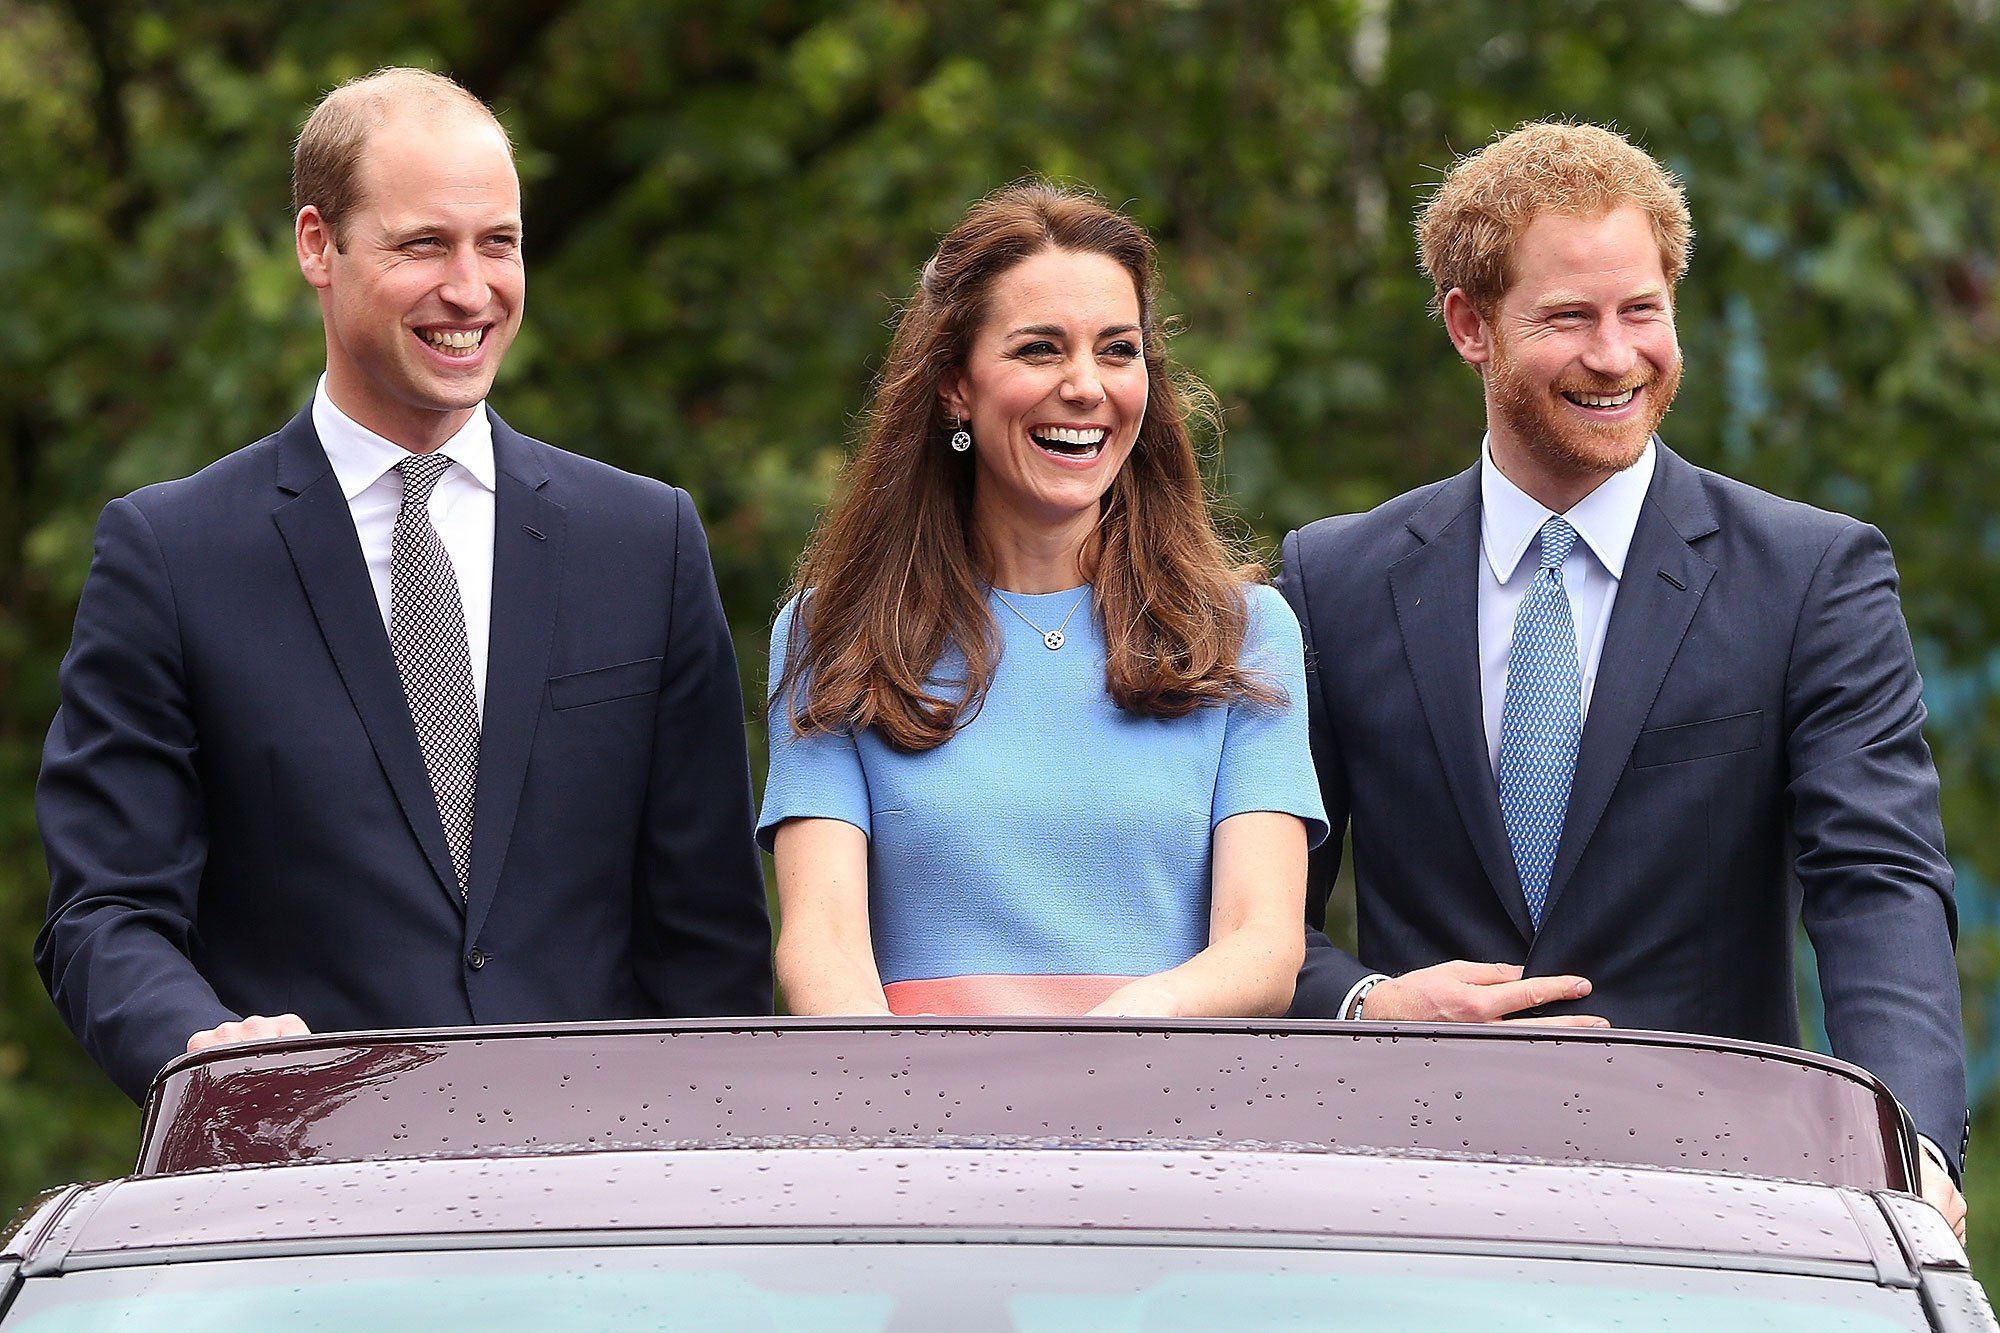 The royal trio will add their voices to World Mental Health Day on October 10